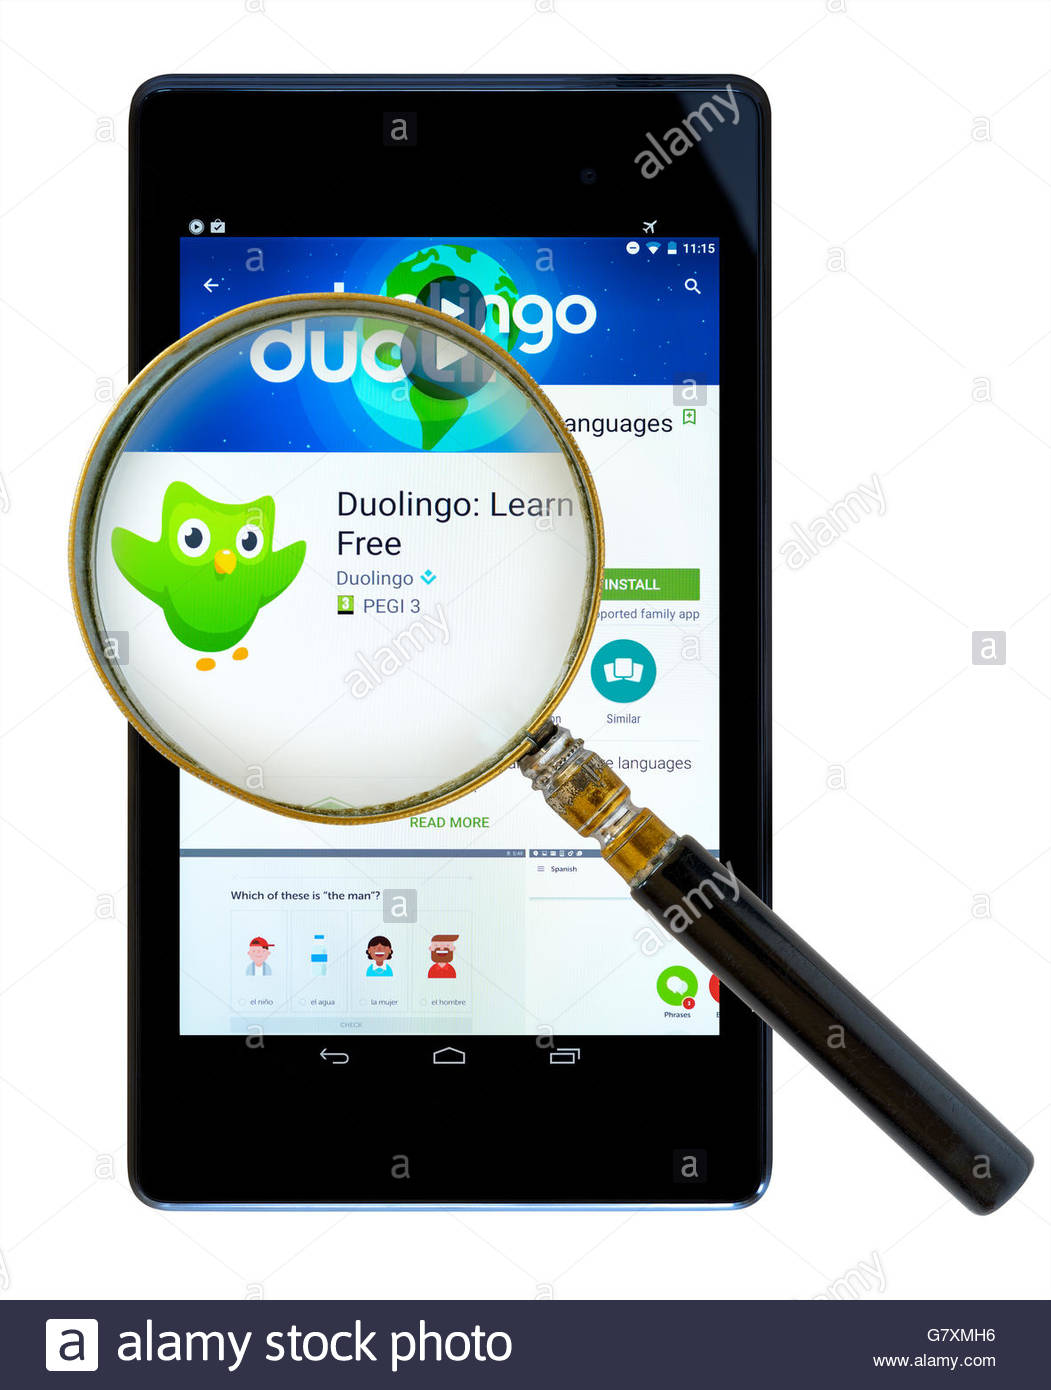 Duolingo language learning app shown on a tablet computer